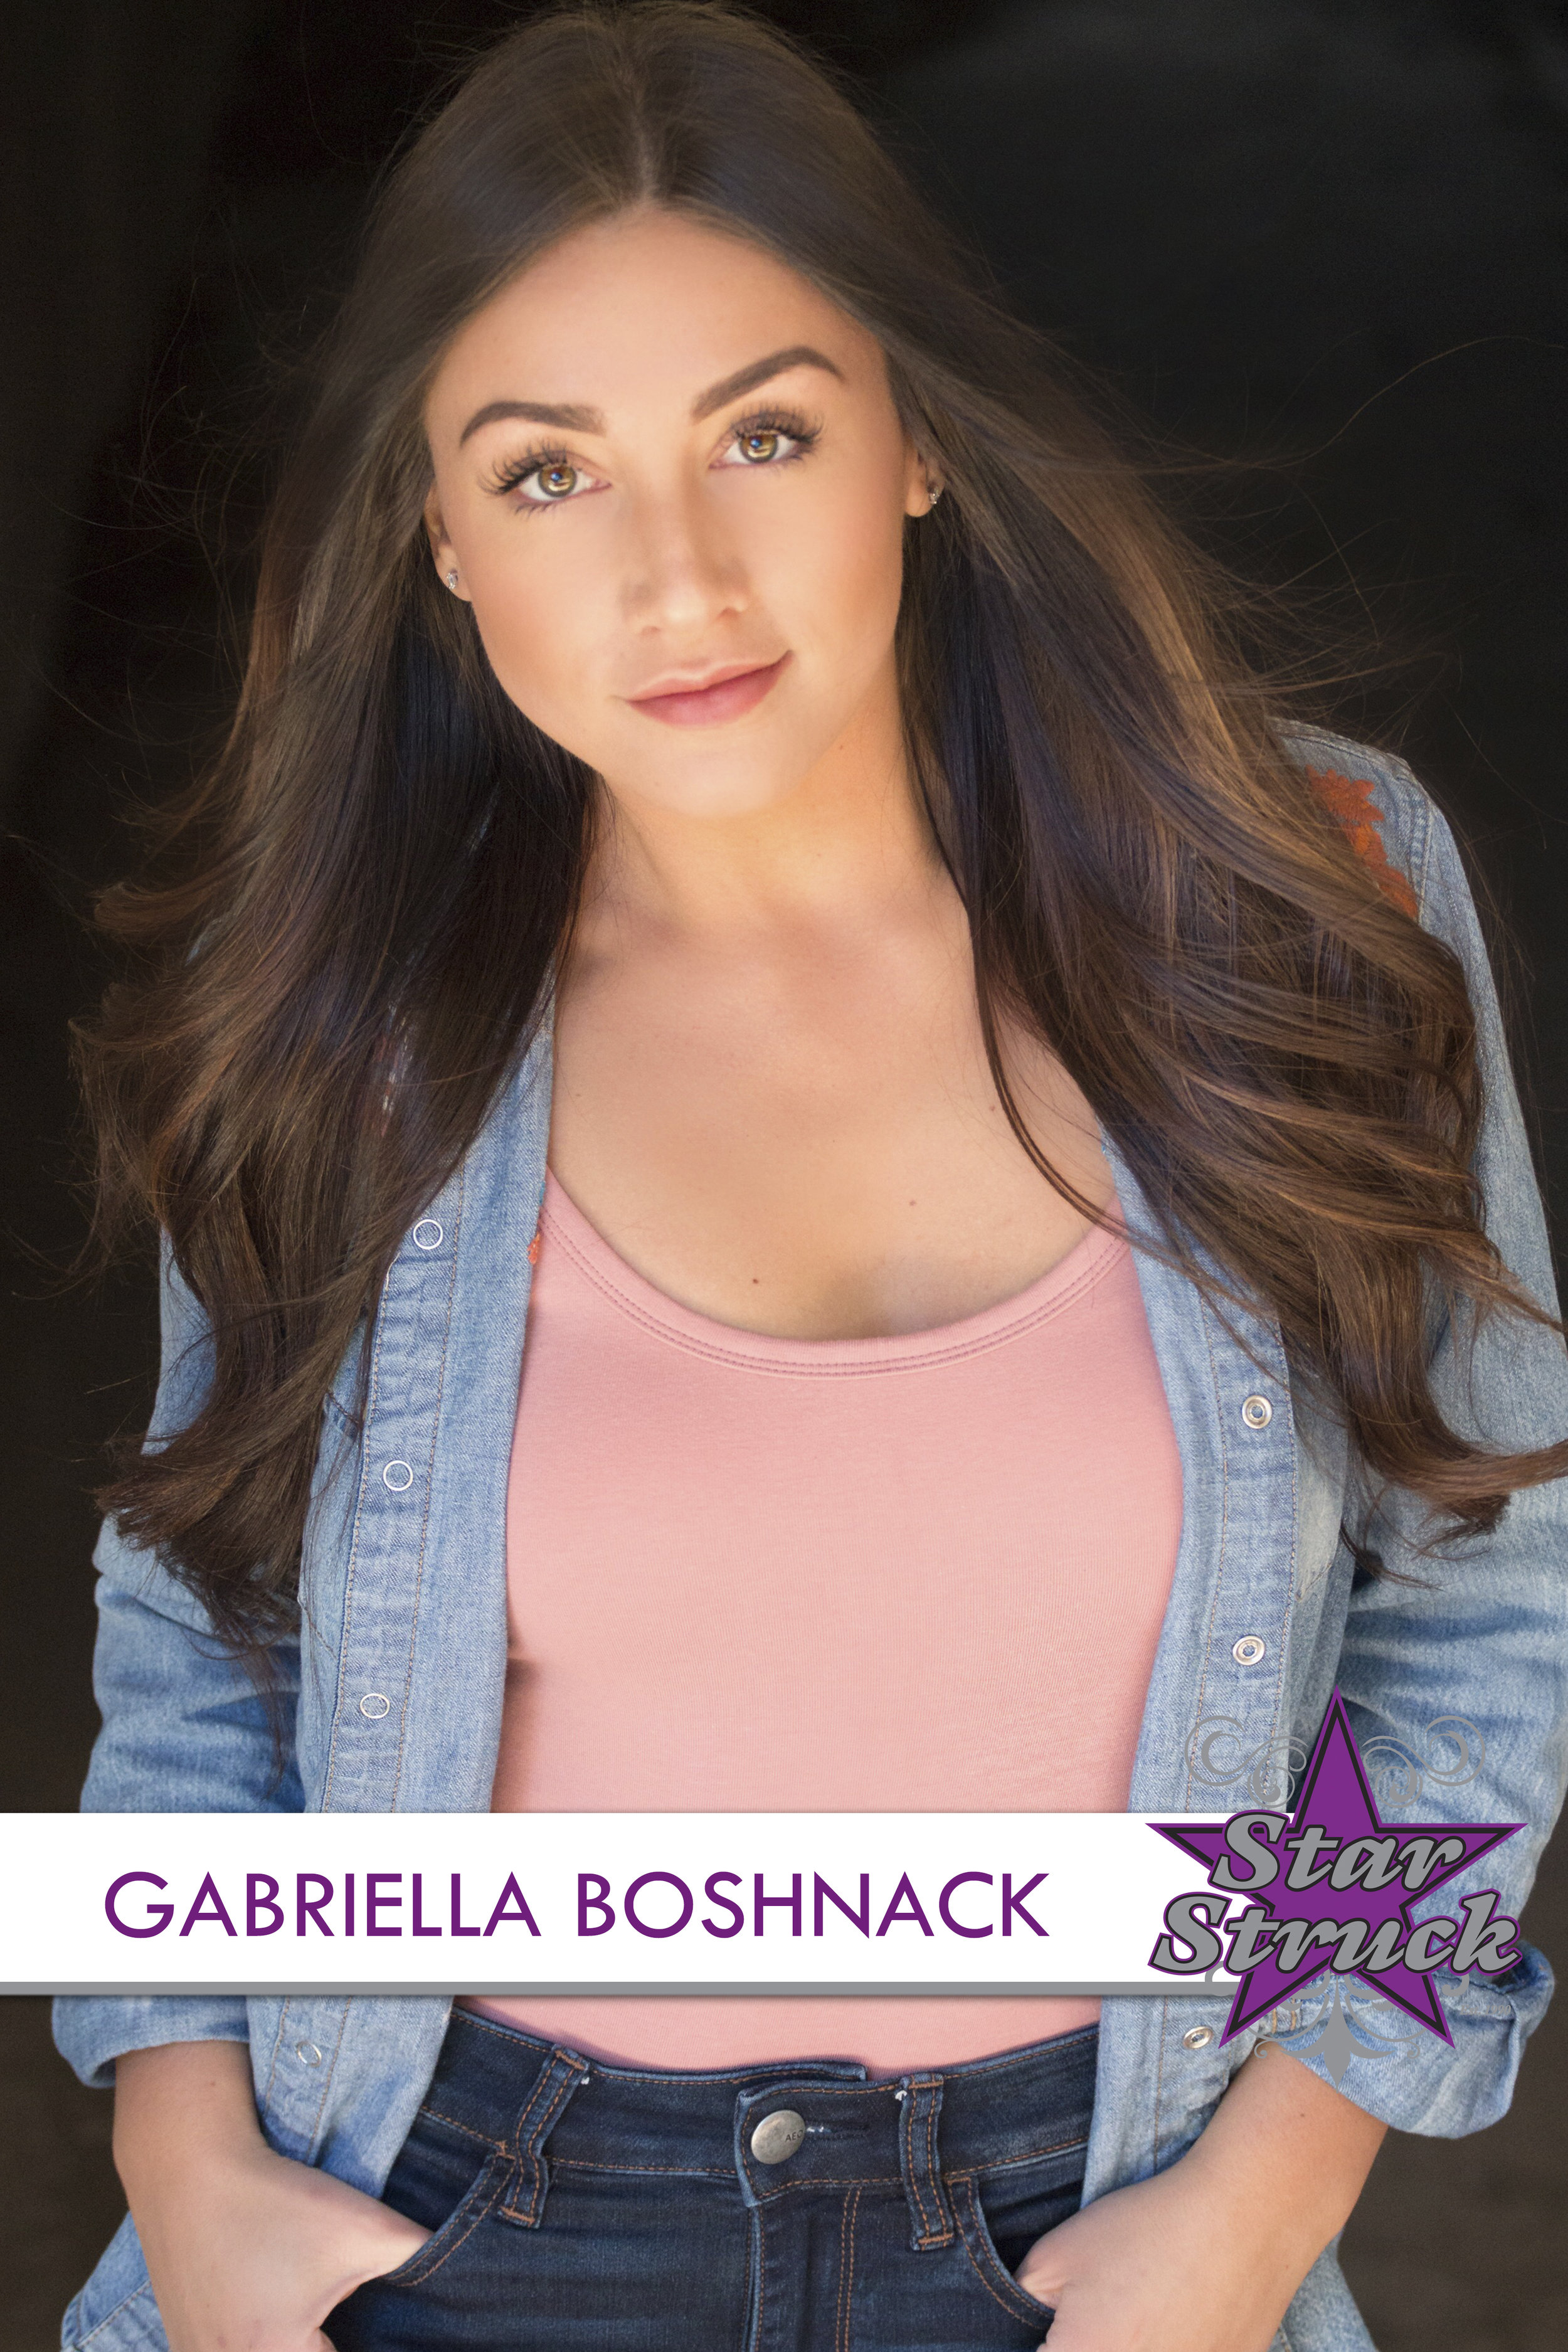 GABRIELLA BOSHNACK   Gabriella started dancing at the age of 3 here at Star Struck Dance. She has trained in all genres of dance and has taken class with major choreographers at Broadway Dance Center, Millennium Dance Complex: Tokyo, and many dance conventions. Gabriella is represented by of one of the biggest talent agencies on the east and west coast, MSA Agency (McDonald Selznick Associates.) Gabriella's most recent credit was being a swing on the National/International Tour of the Broadway show Bring It On: The Musical. While pursuing her professional dance career Gabriella loves teaching and choreographing here at SSDS!